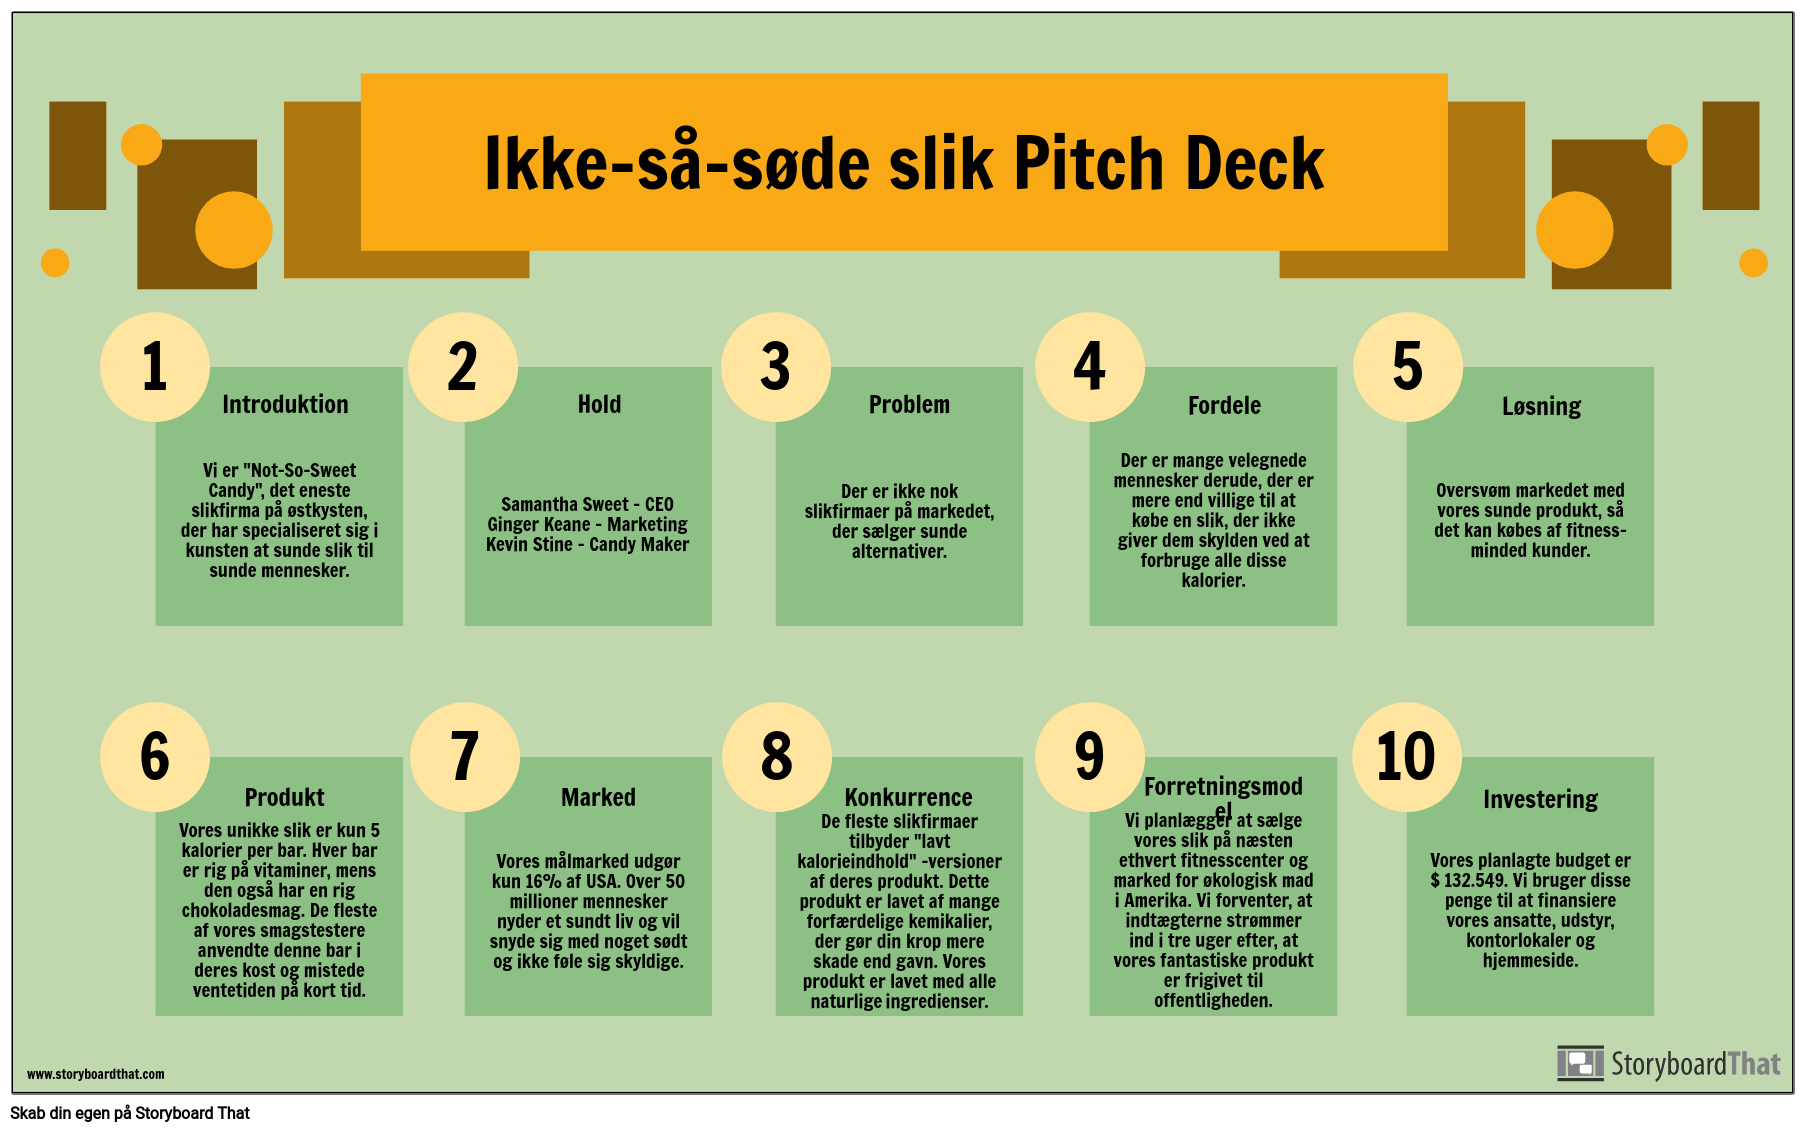 Pitch Deck Info Eksempel